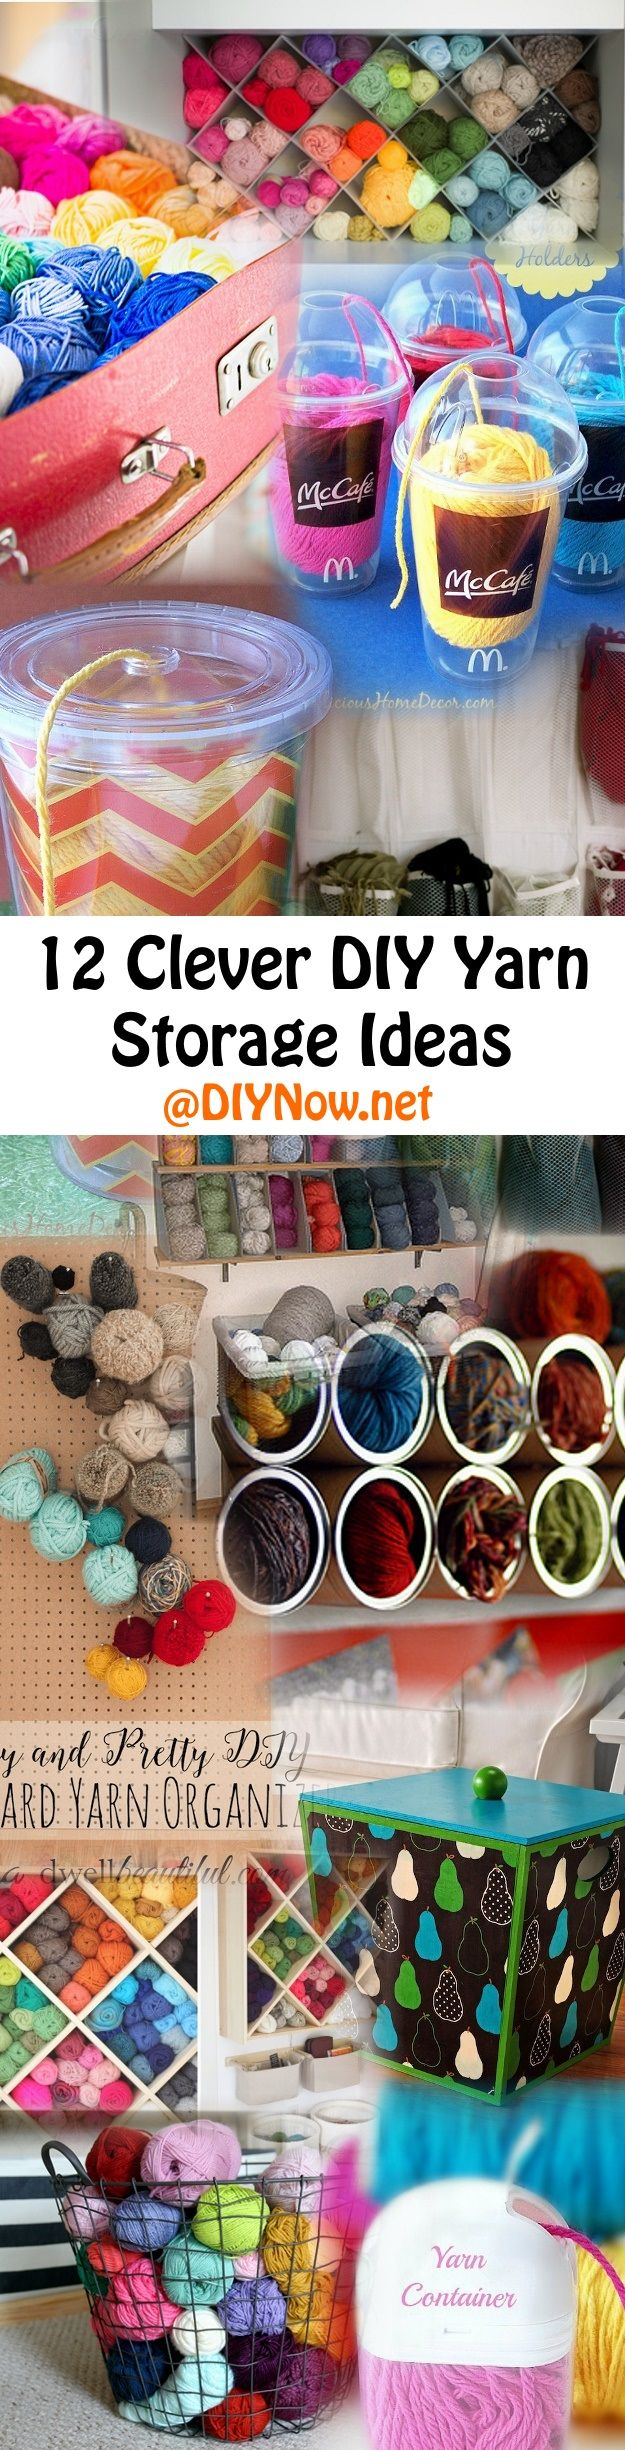 12 Clever DIY Yarn Storage Ideas